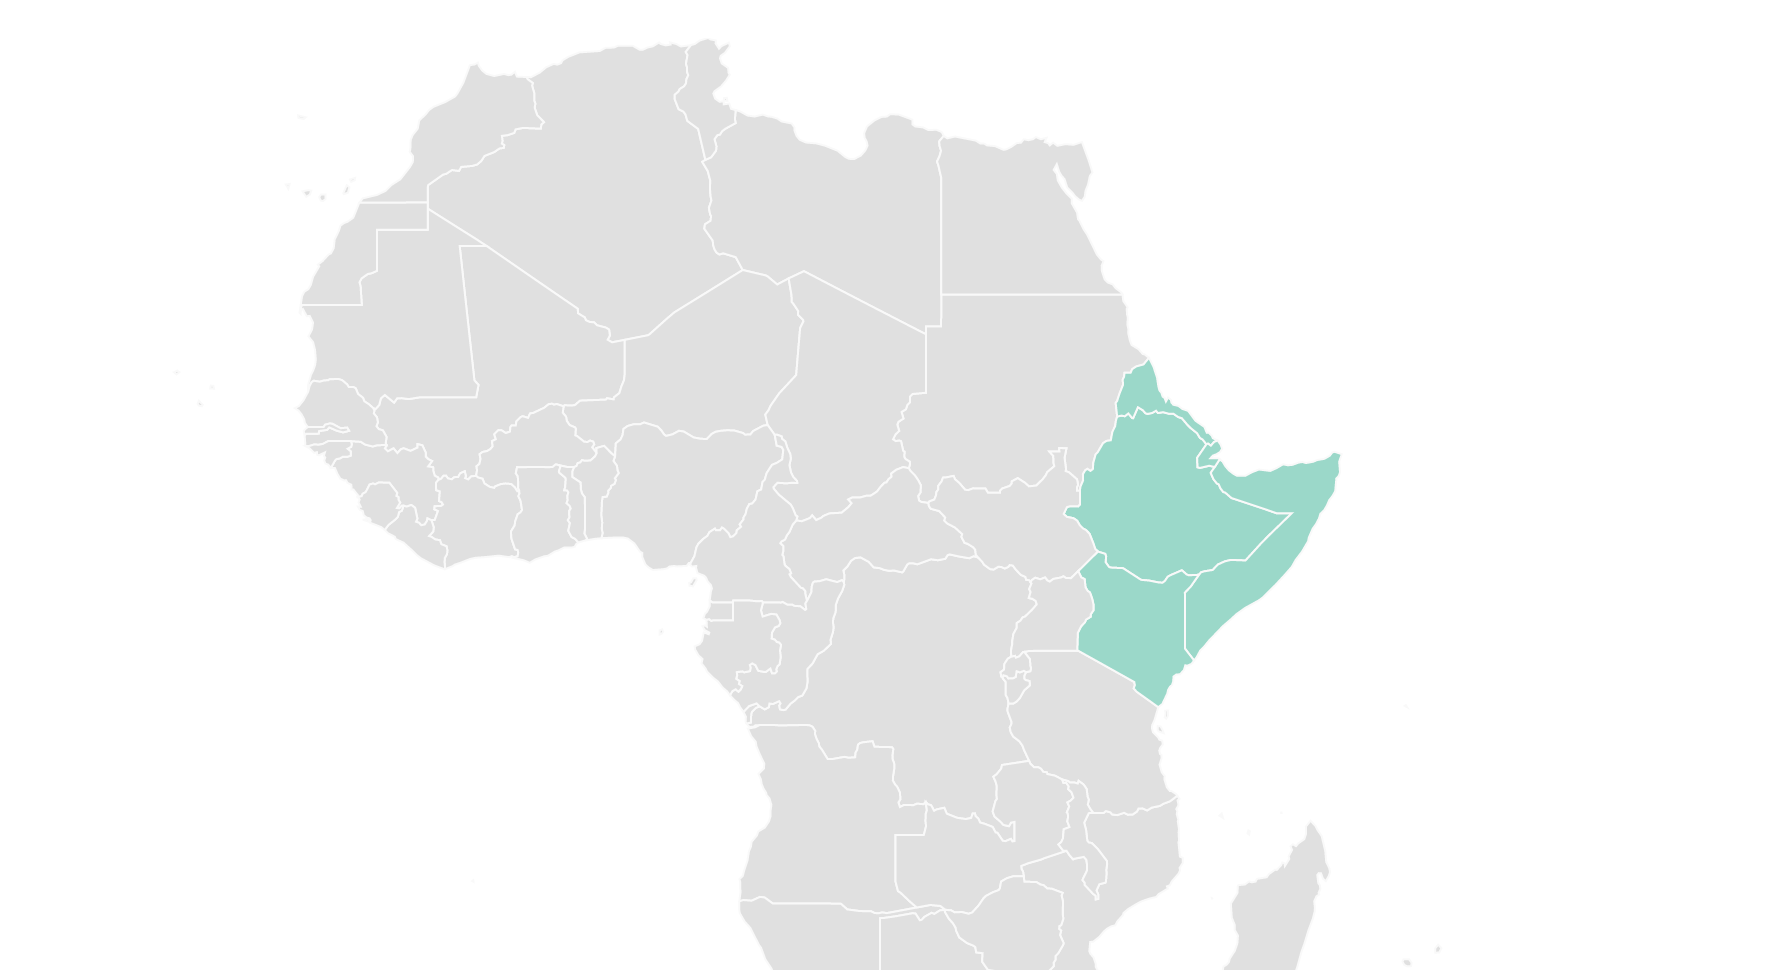 Horn of Africa map for WordPress